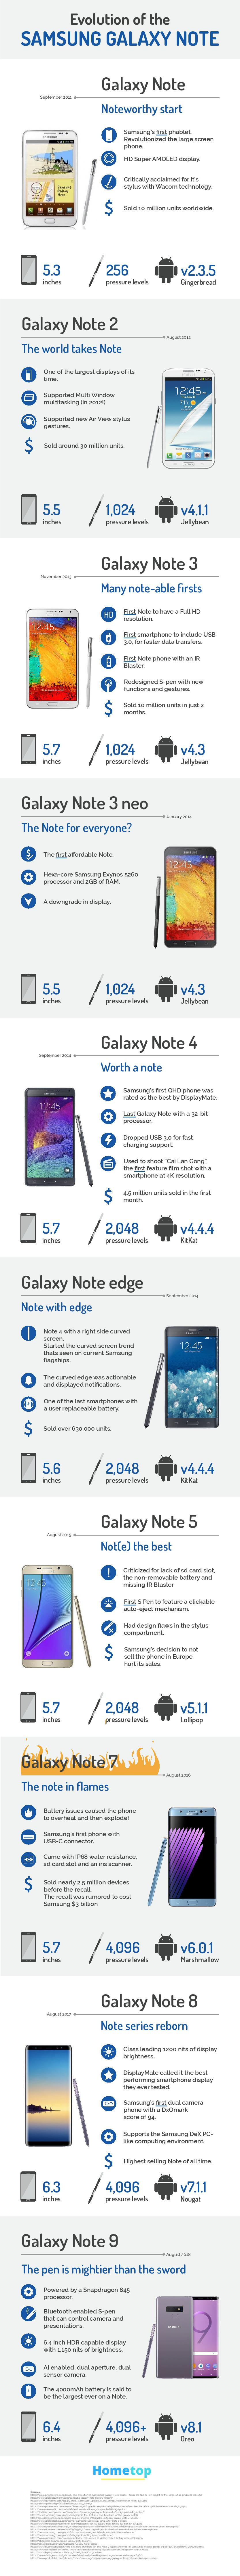 Evolution Of The Samsung Galaxy Note Smartphone